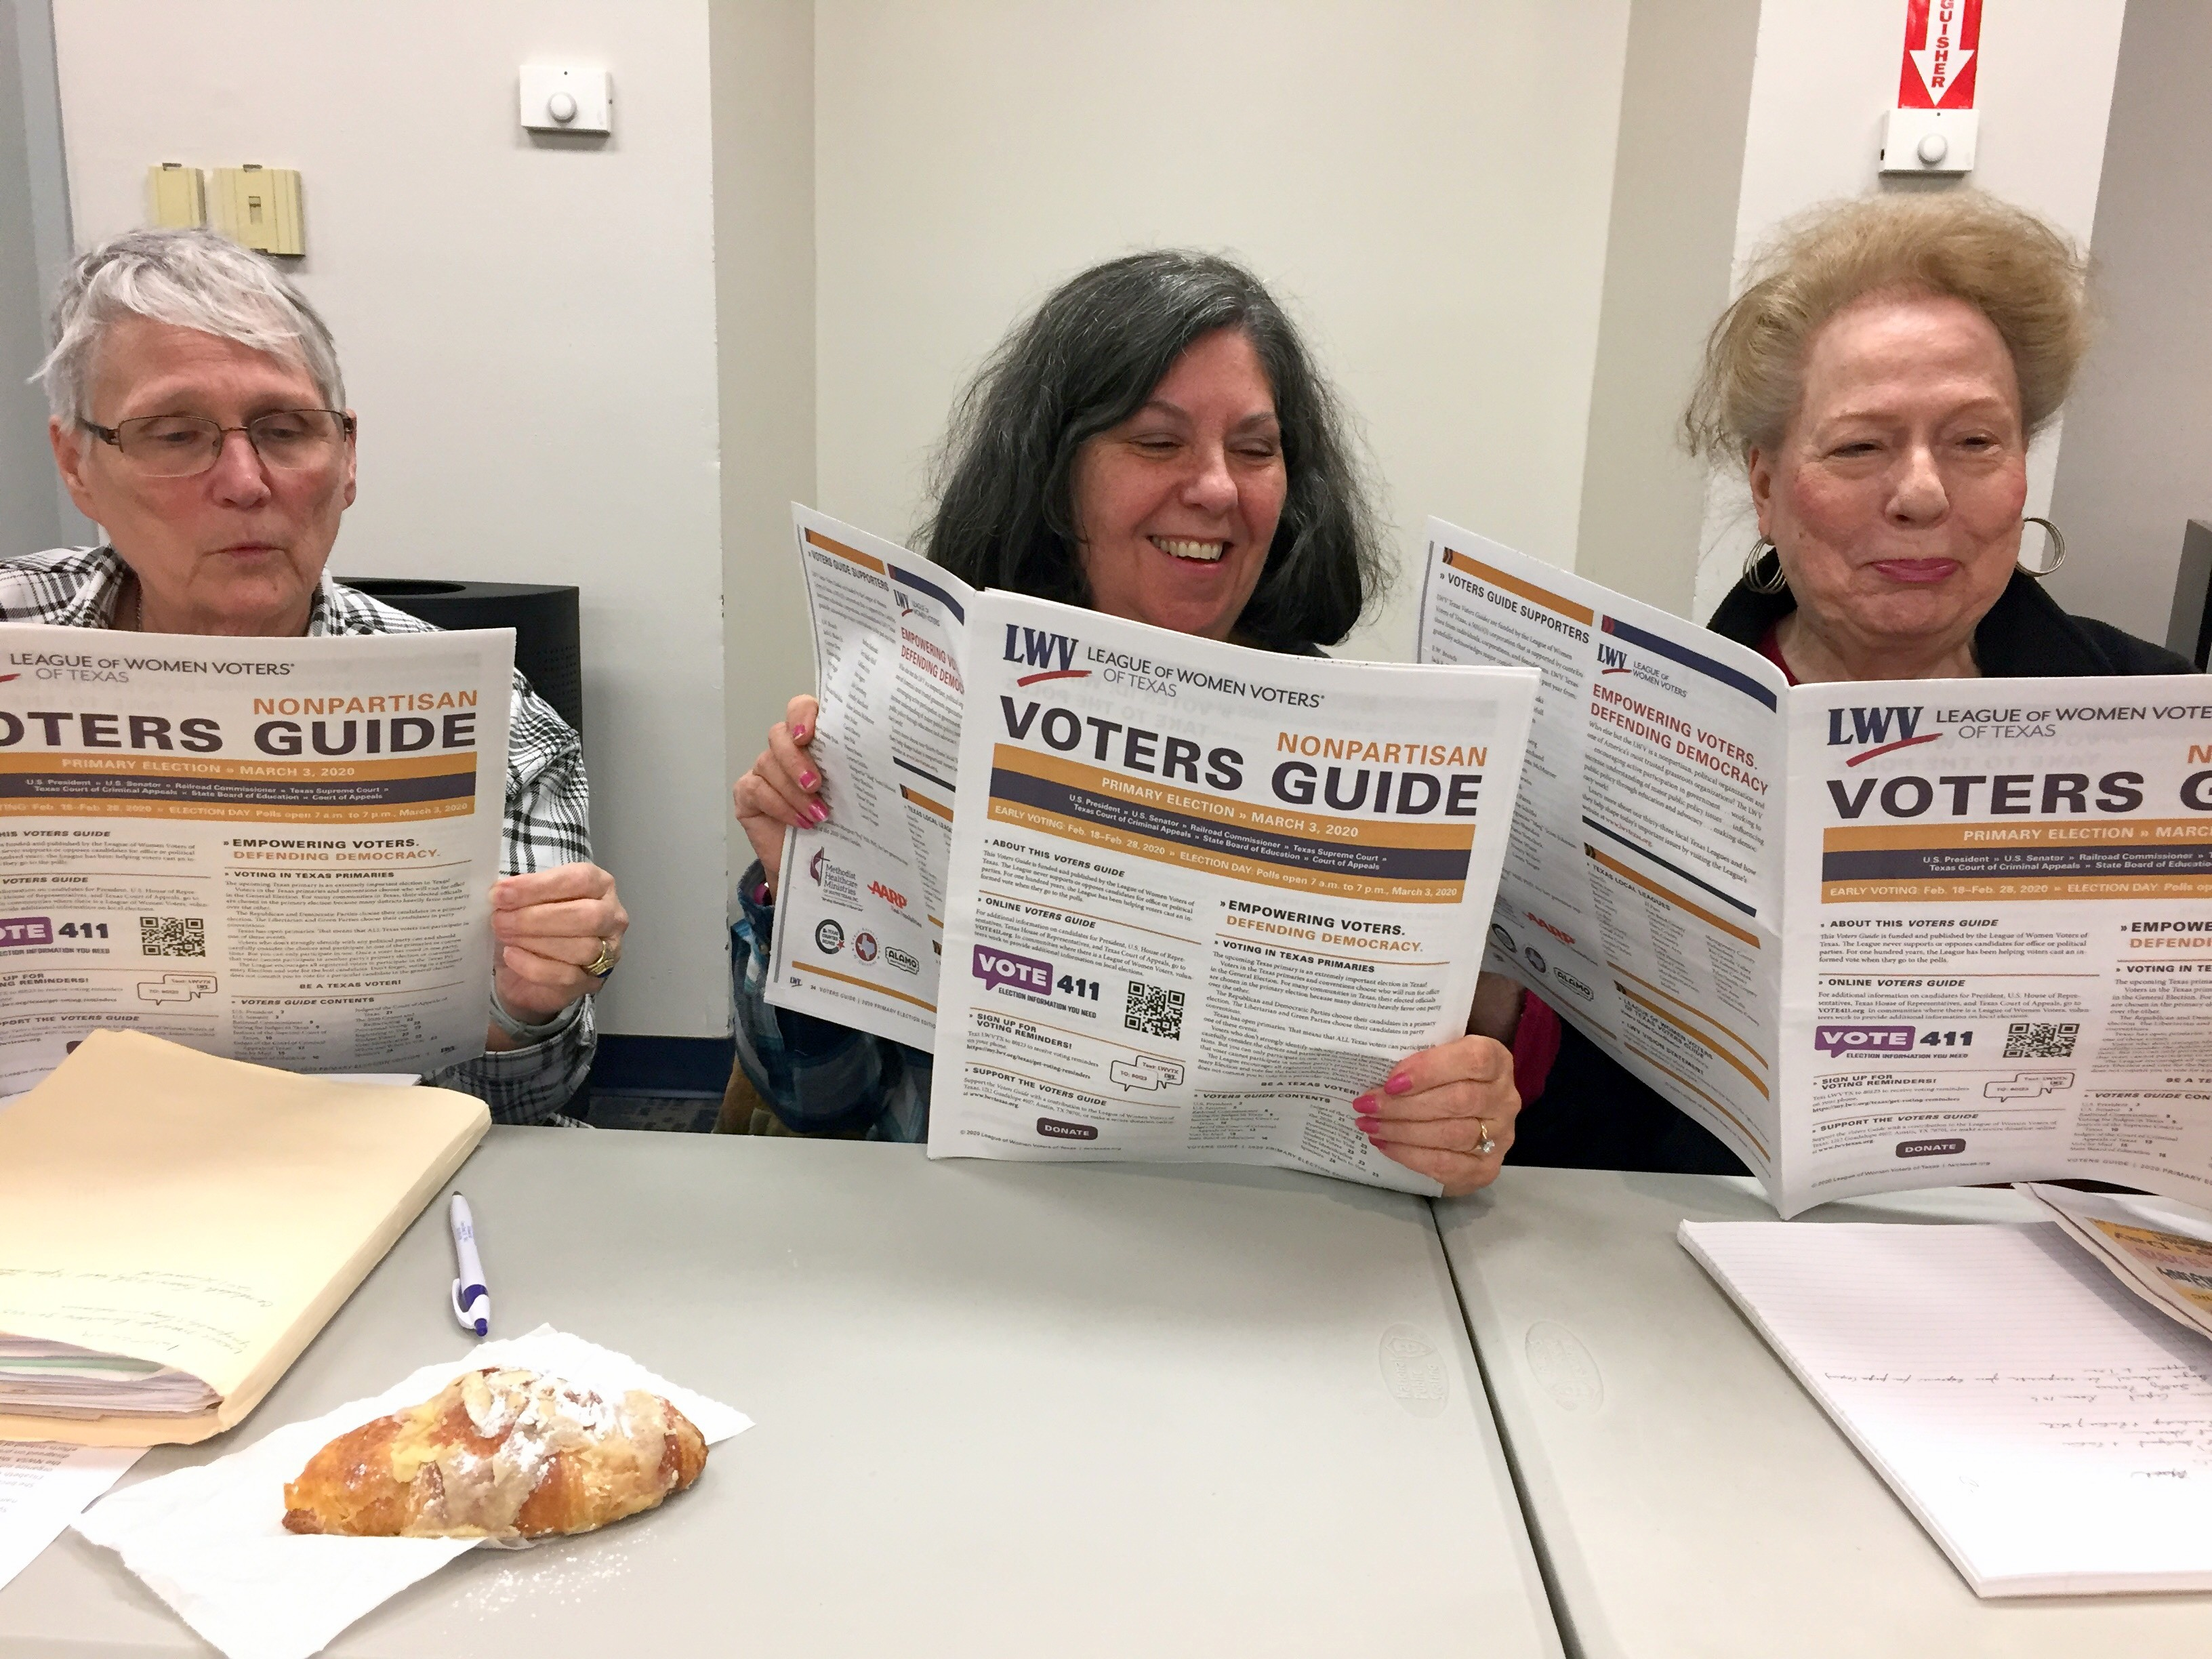 3 women holding Voter Guides